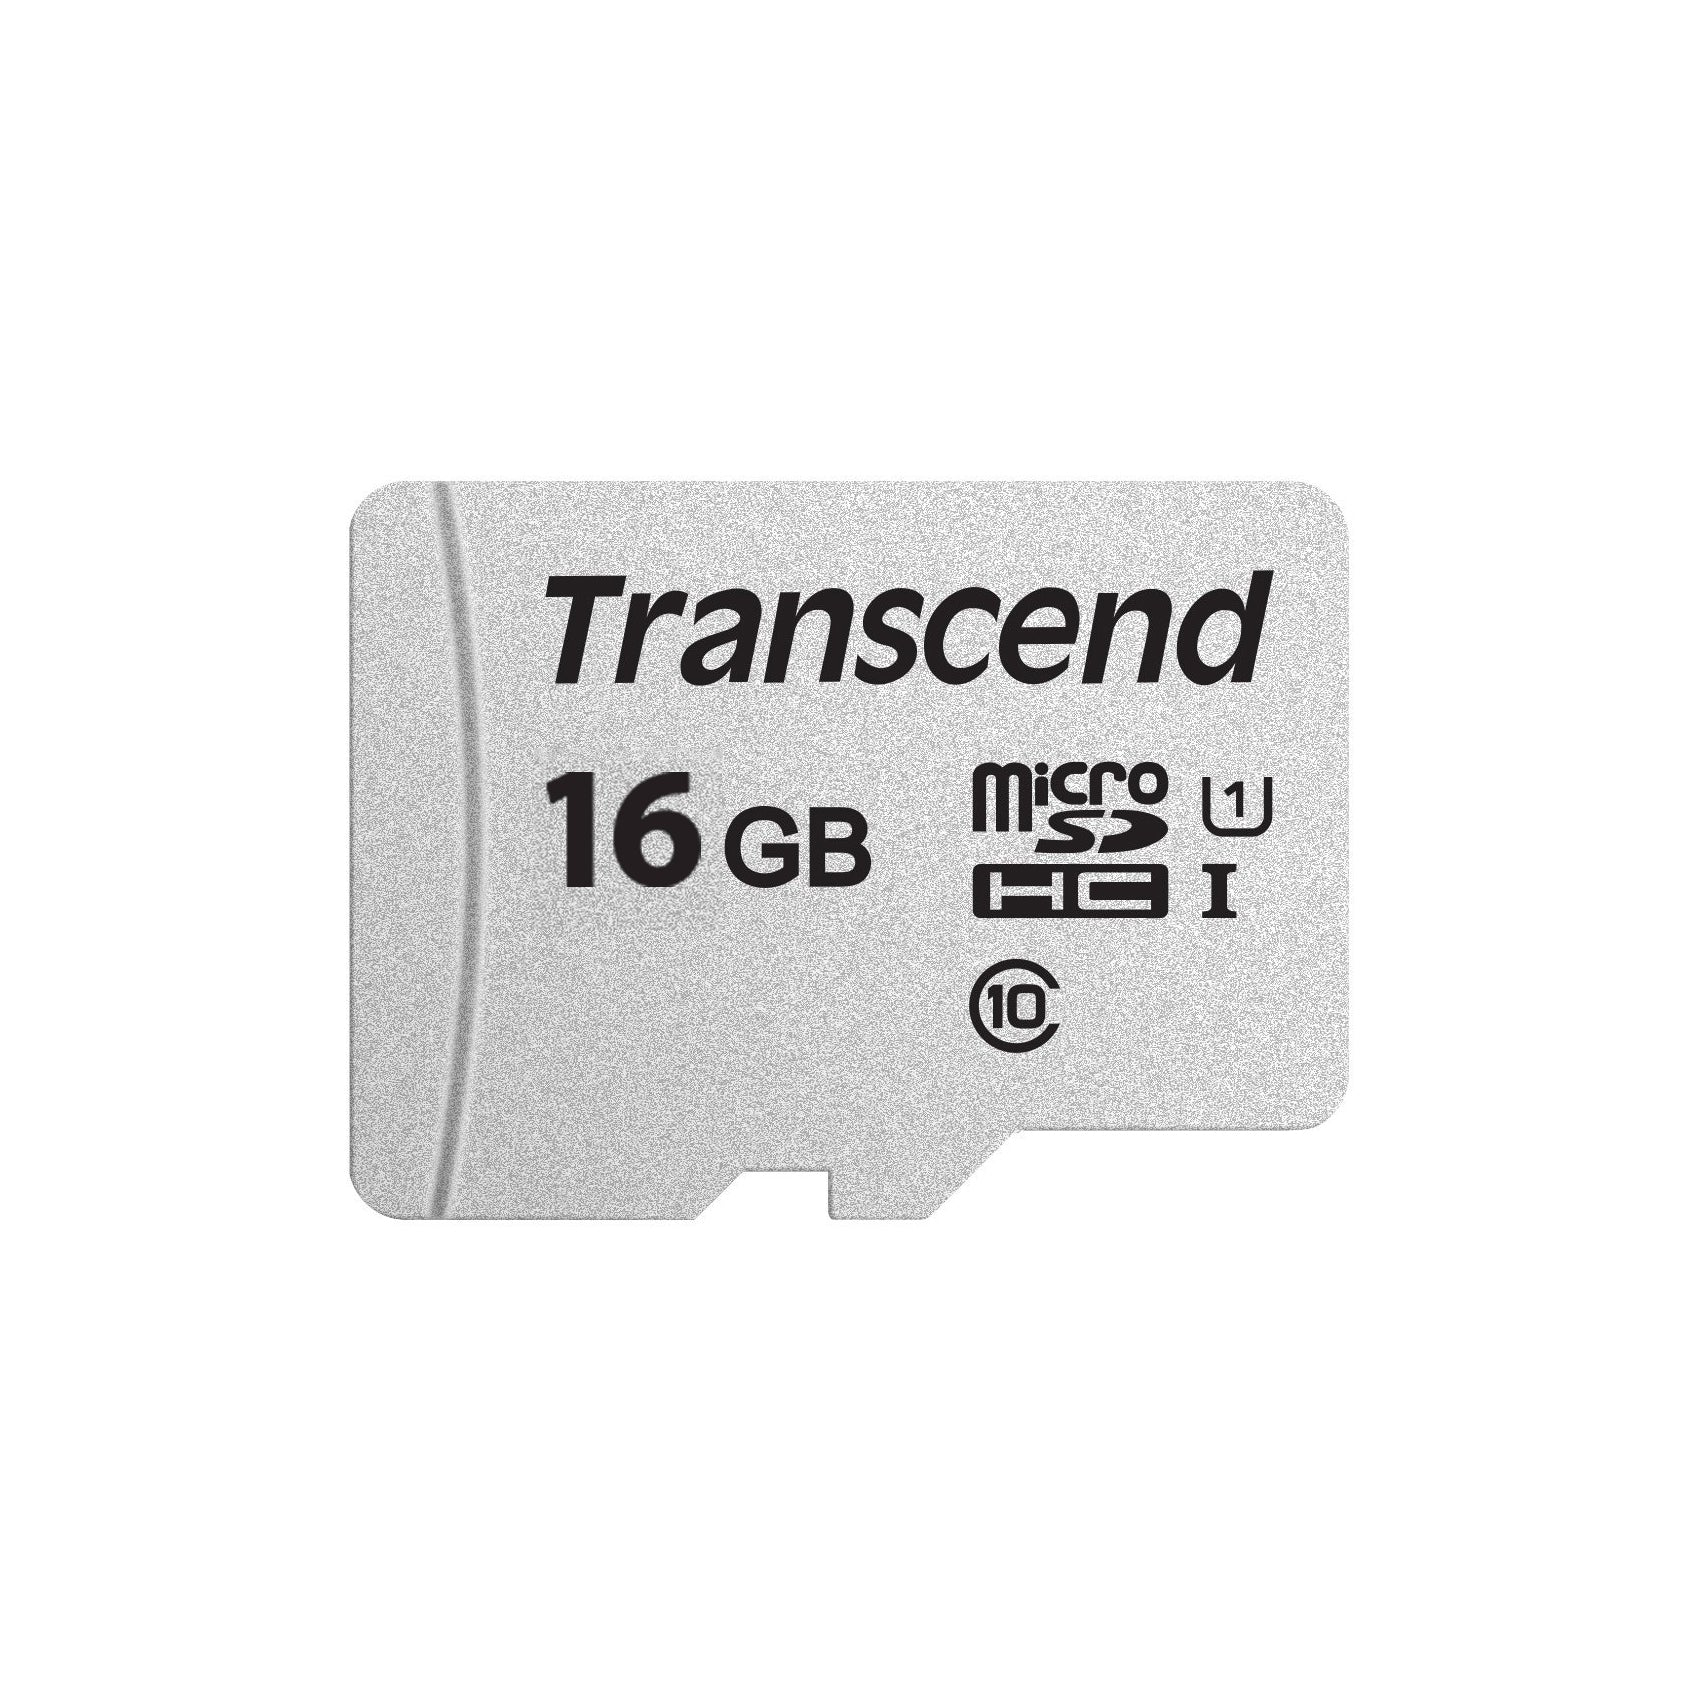 Transcend 16GB SD card